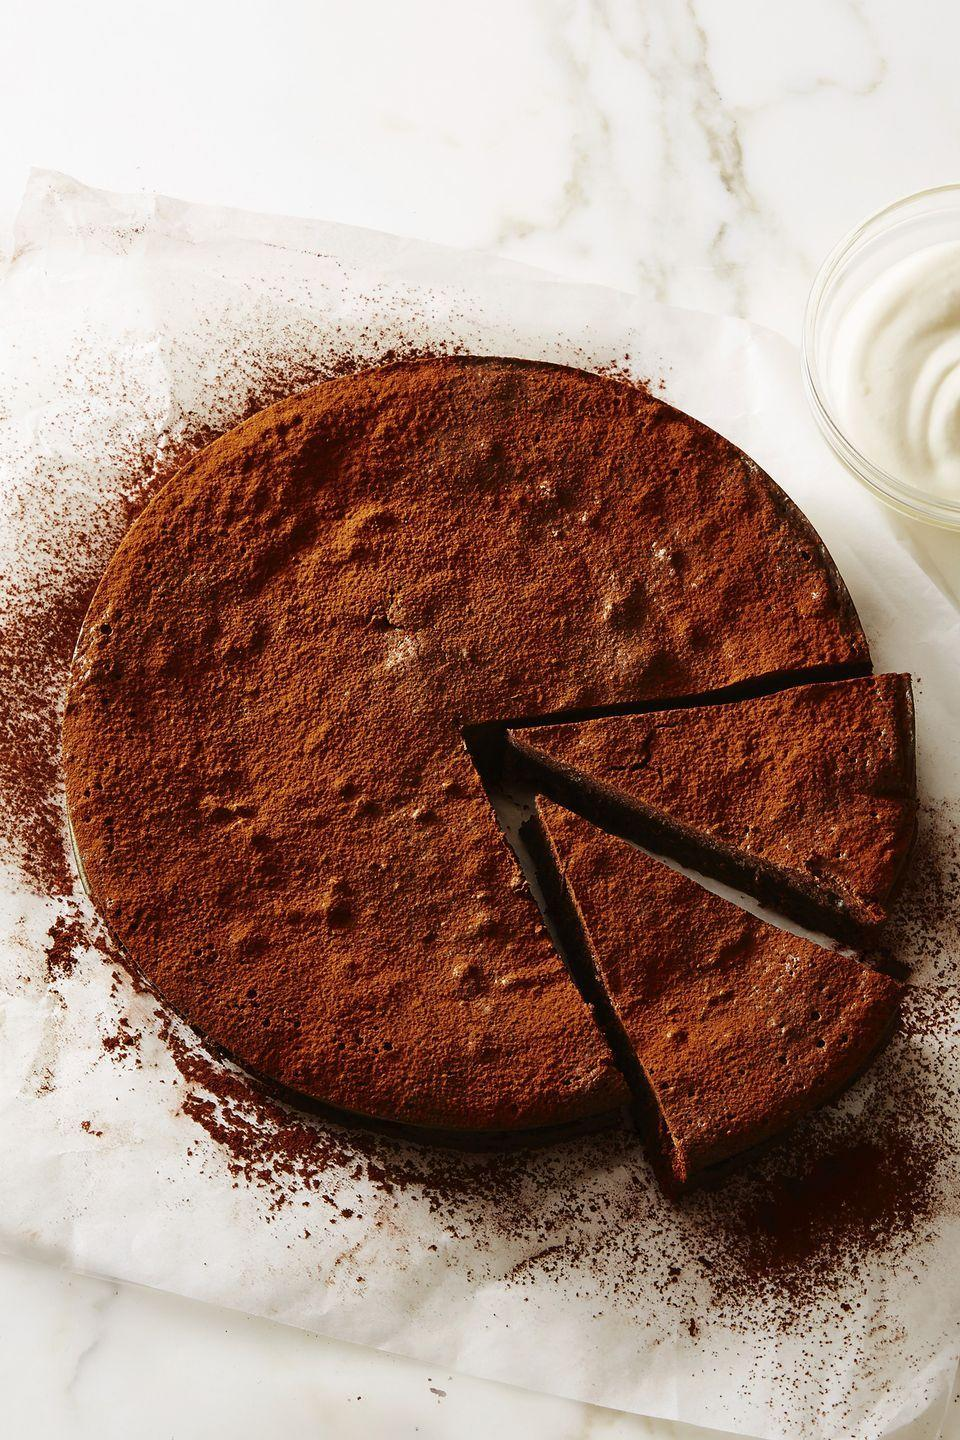 """<p>Sure, this cake may lack flour (yep, gluten-free!) but it certainly doesn't lack in flavor. </p><p><em><a href=""""https://www.goodhousekeeping.com/food-recipes/dessert/a48194/flourless-fudge-cake-recipe/"""" rel=""""nofollow noopener"""" target=""""_blank"""" data-ylk=""""slk:Get the recipe for Flourless Fudge Cake »"""" class=""""link rapid-noclick-resp"""">Get the recipe for Flourless Fudge Cake »</a></em> </p>"""